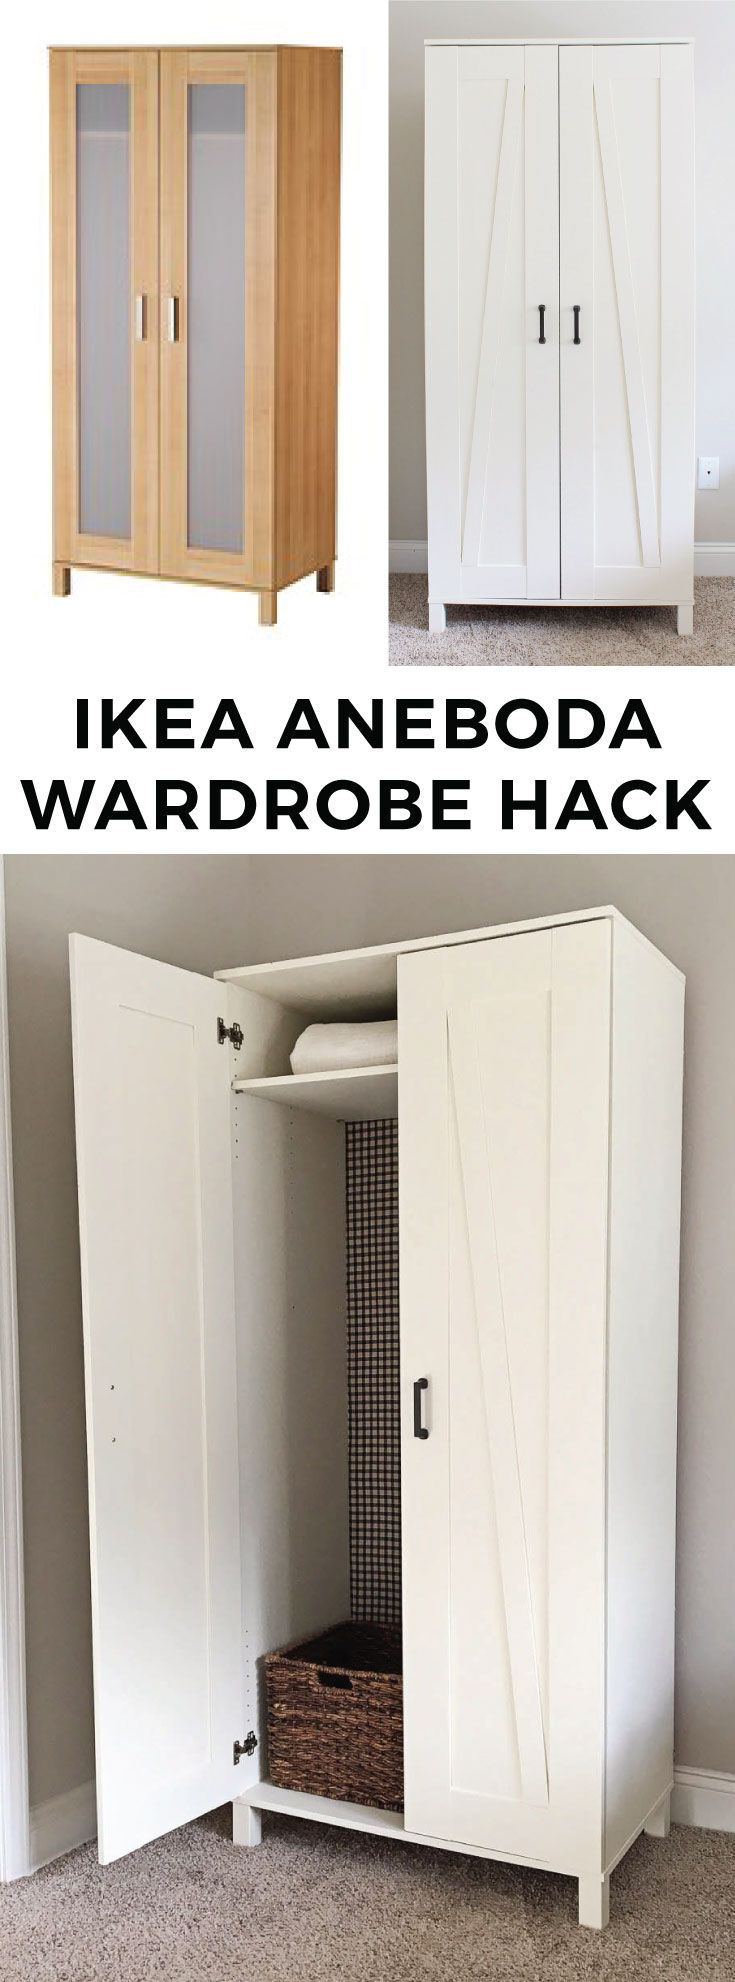 IKEA Hack: Aneboda Wardrobe | DIY Home Updates | Pinterest | Möbel ...